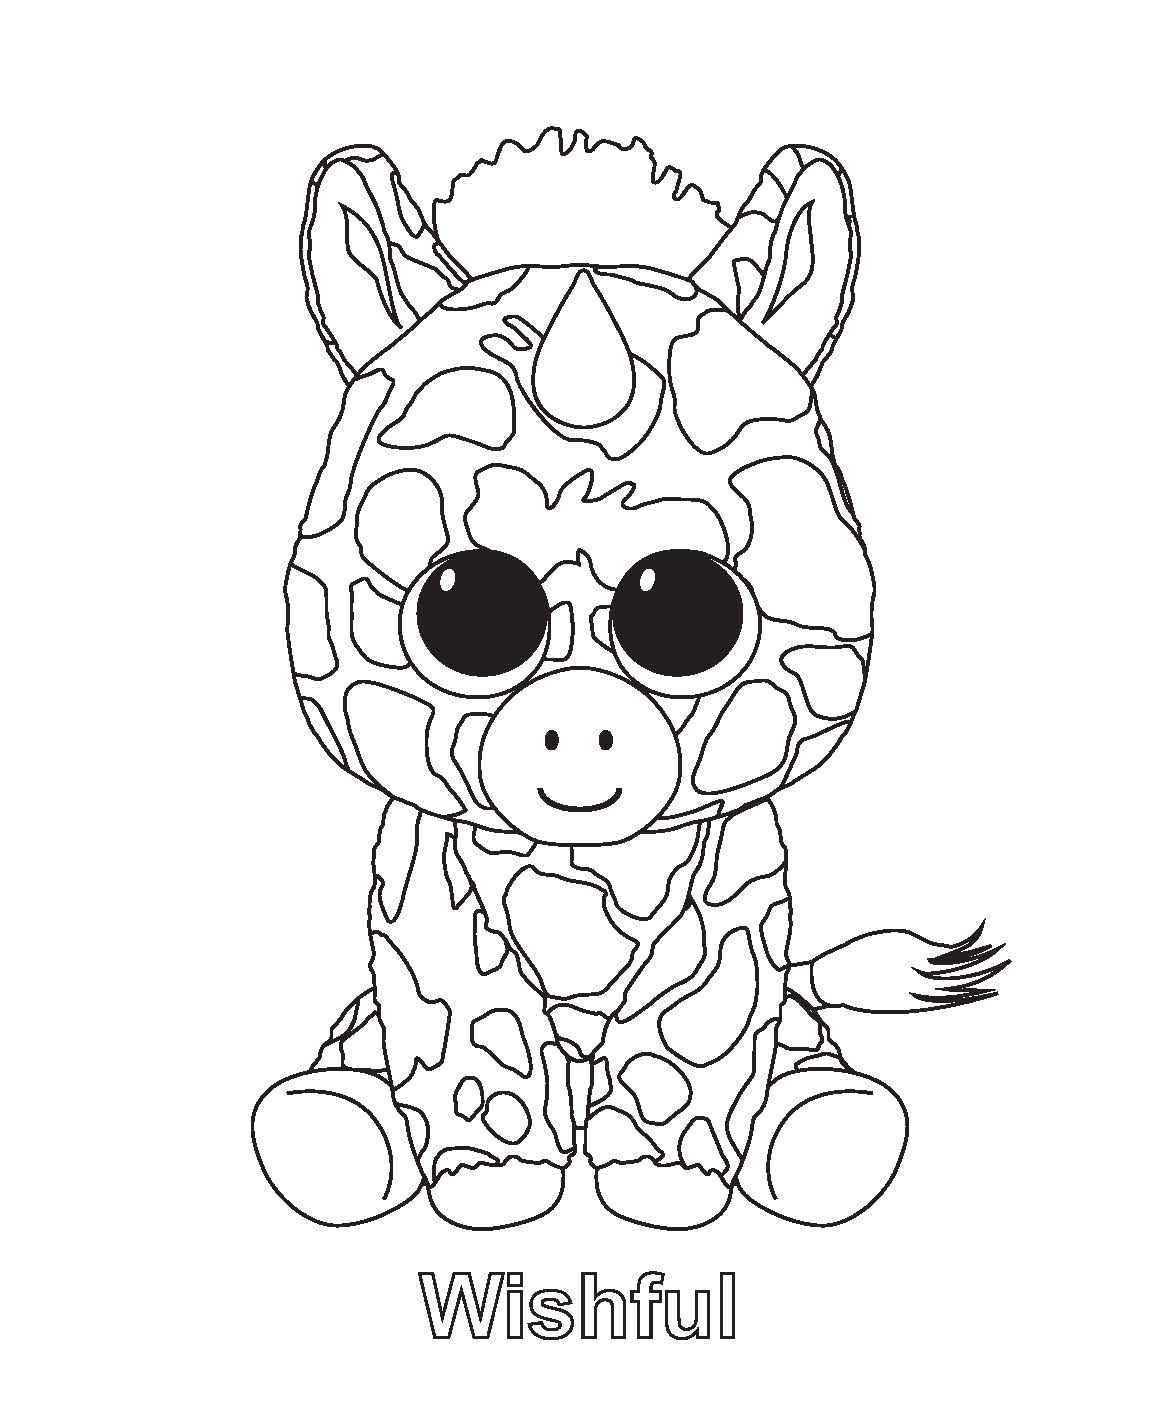 boo boo coloring pages - photo#31